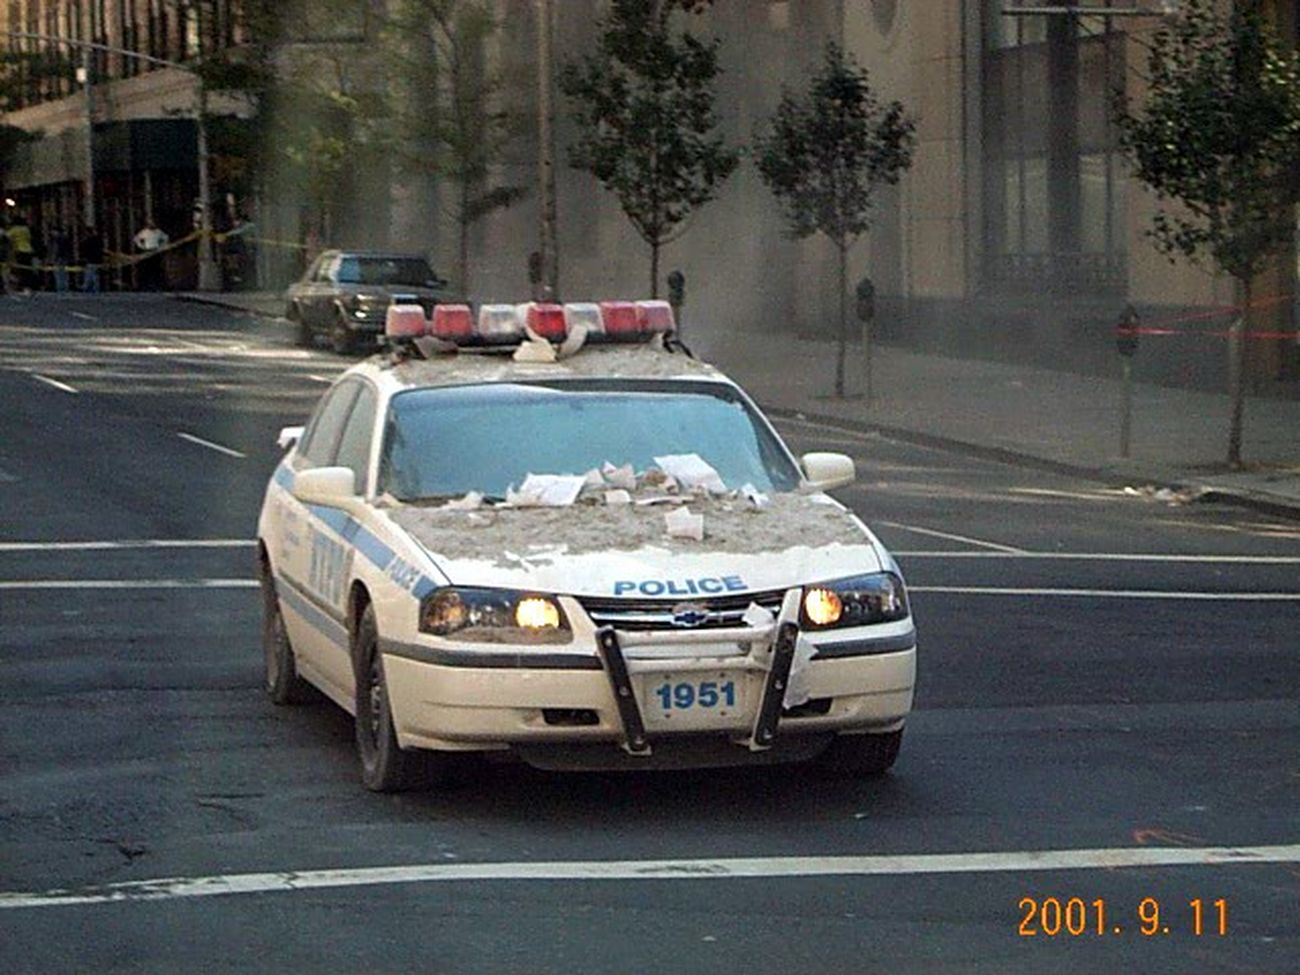 9-11 9-11-2001 9/ 11 911 911worldtradememorial Police Policecar R.I.P To Does Who Died In 9:11 World Trade Center WTC